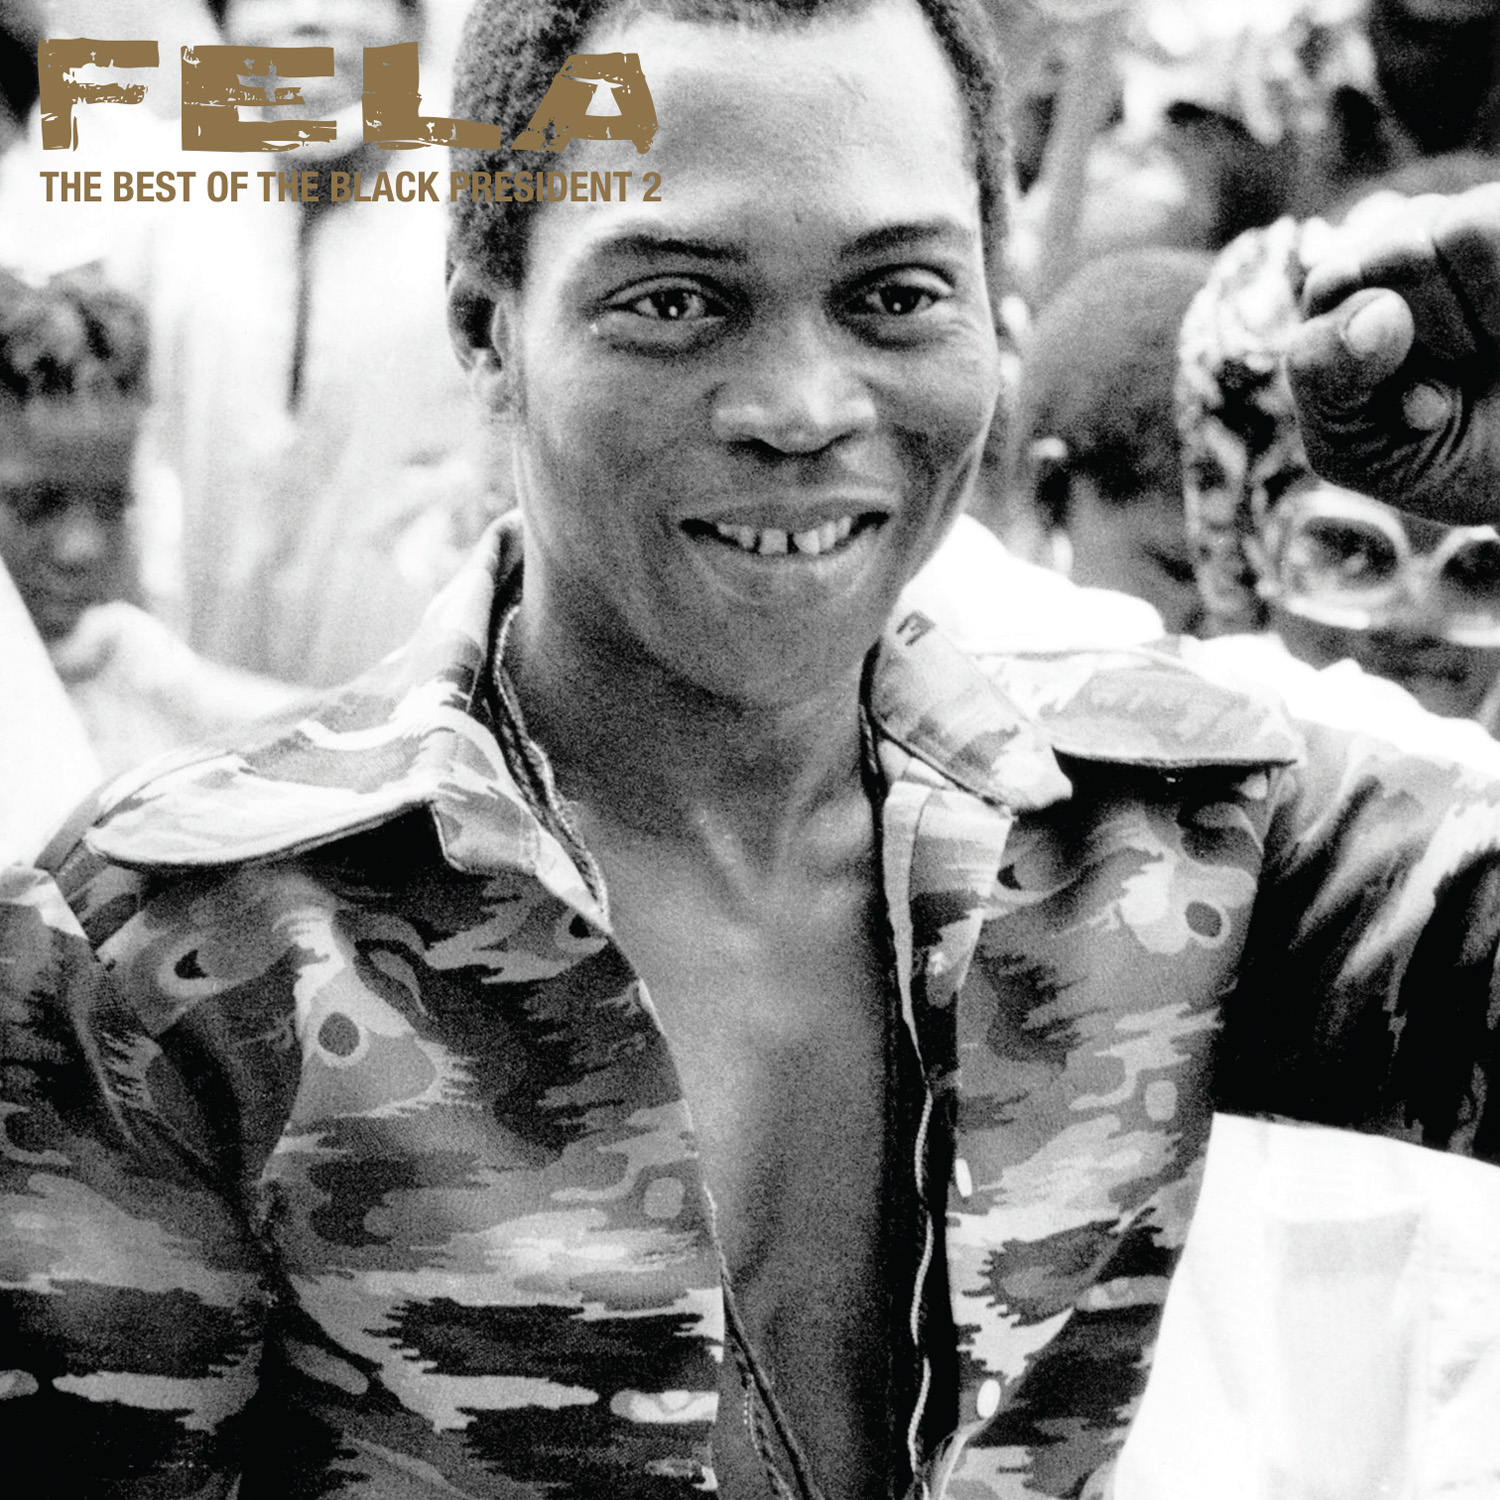 Fela Kuti Fela Kuti The Best Of The Black President 2